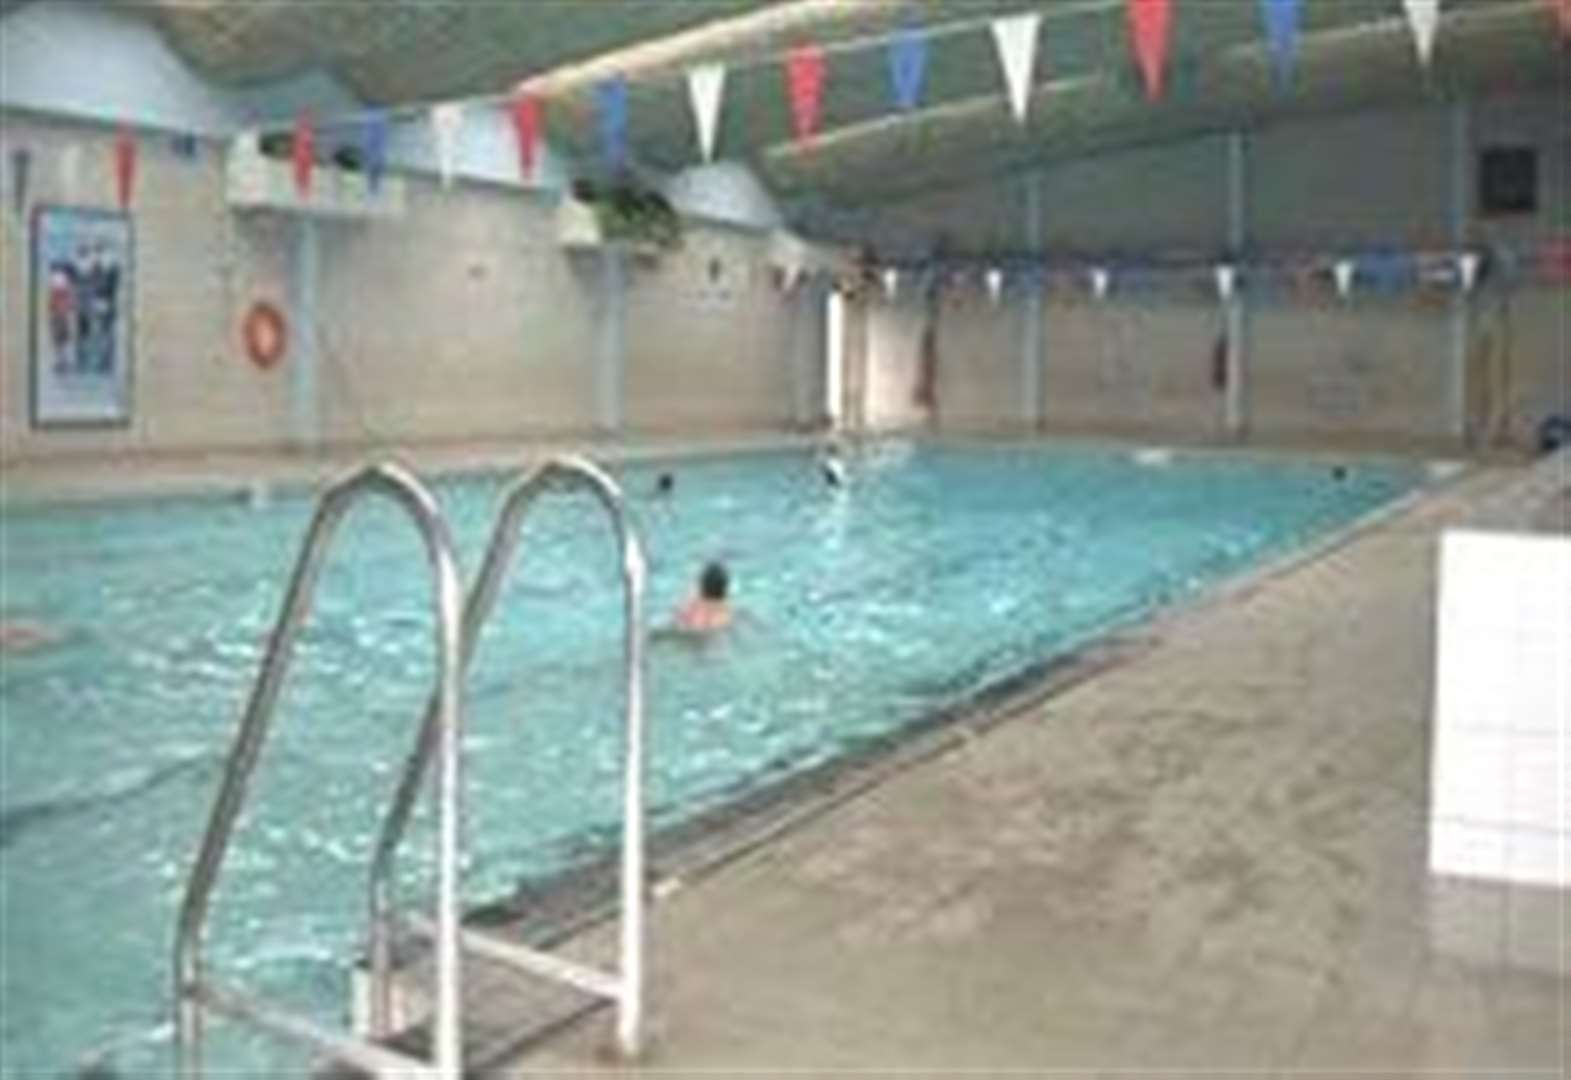 Campaign to save town swimming pool gathers momentum with support from MP Steve Barclay